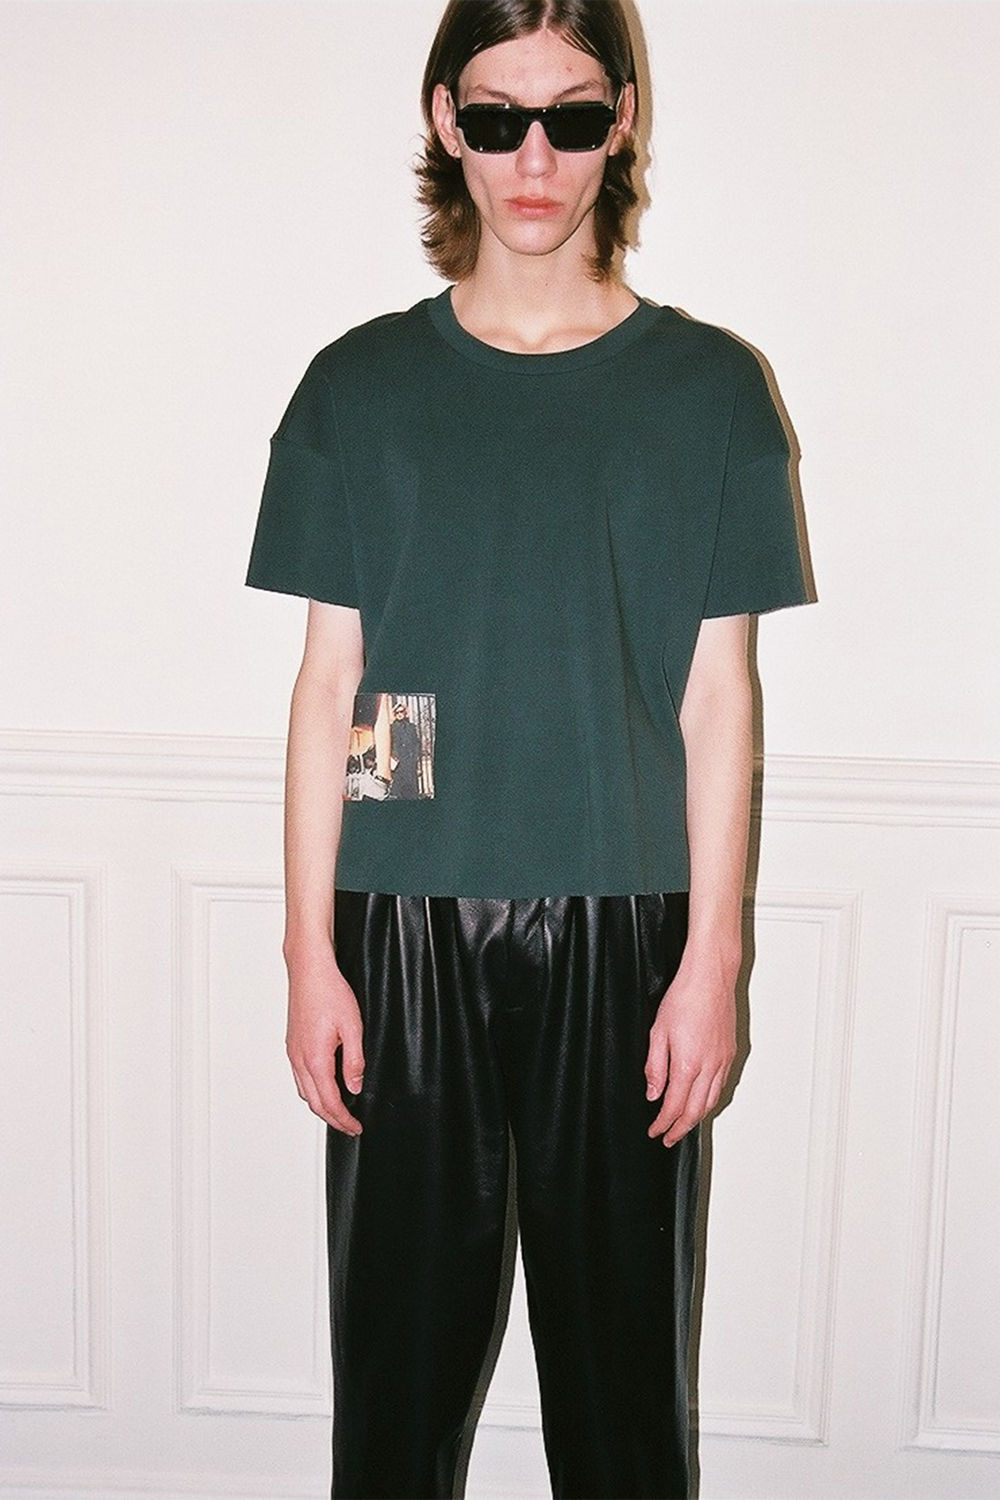 https_%2F%2Fhypebeast.com%2Fimage%2F2018%2F07%2Fenfants-riches-deprimes-ss19-collection-lookbook-23.jpg